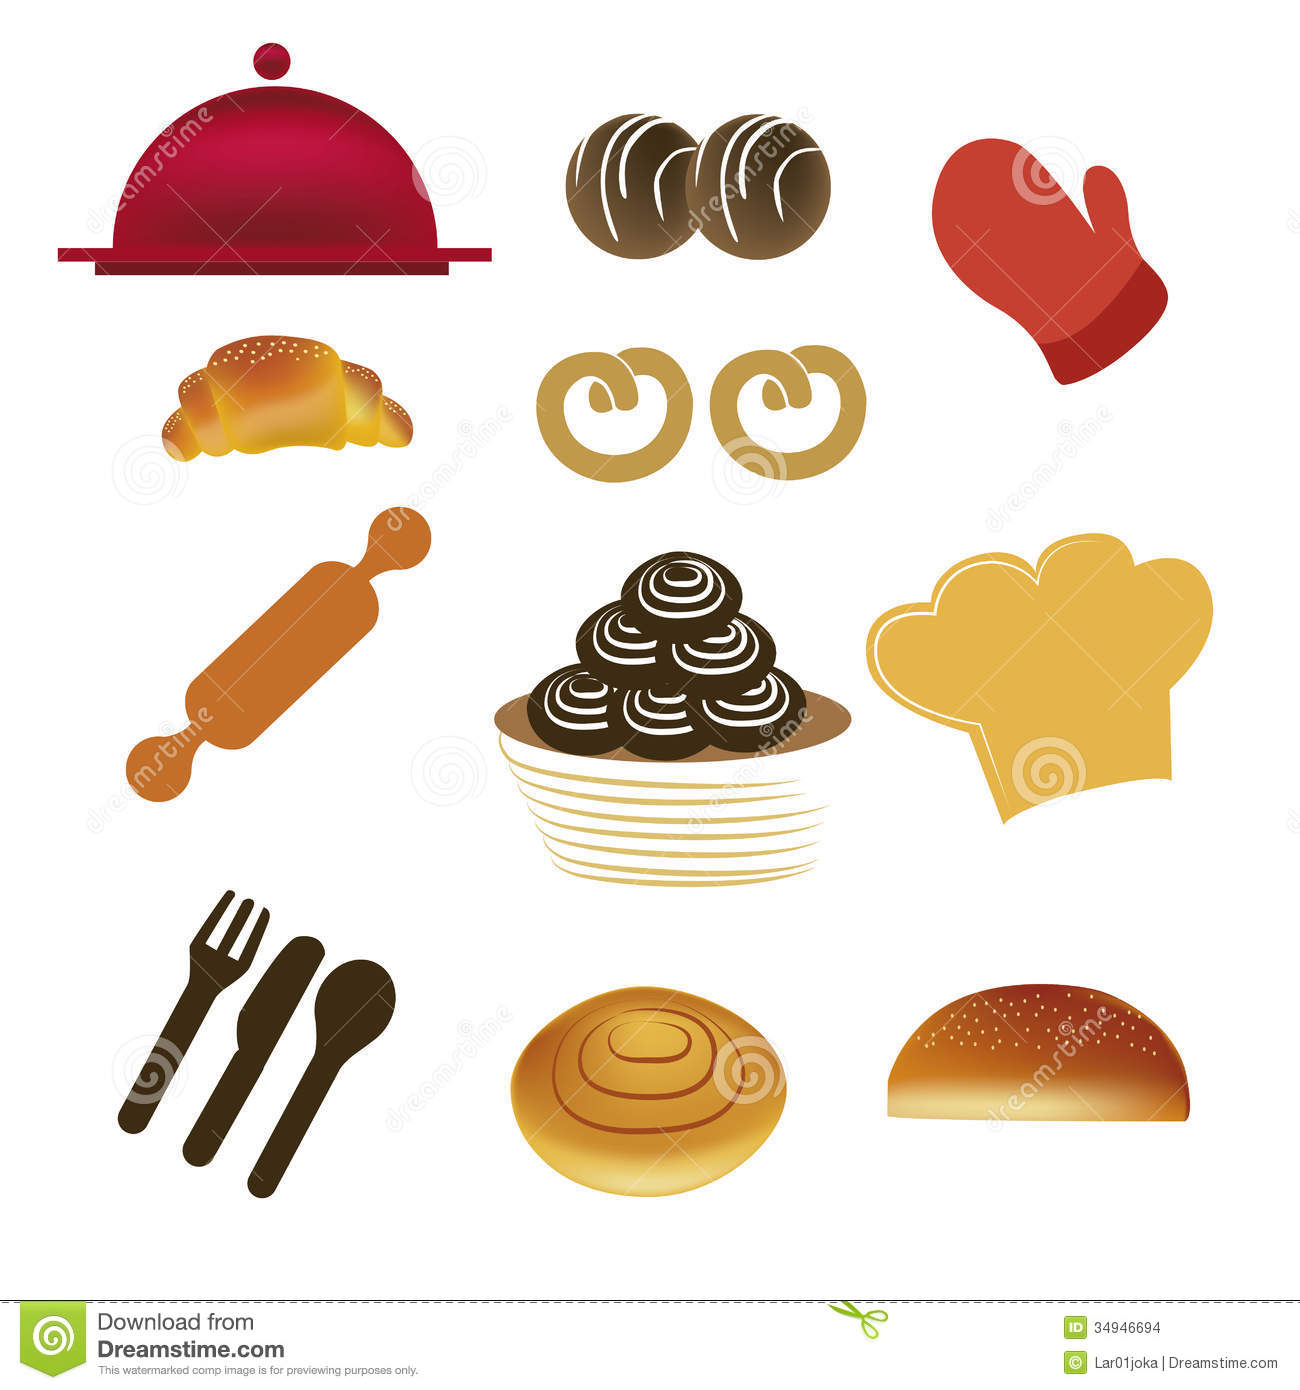 related studies on bakery and bakeshop Existing literature in respect of bakery products was made by the researcher in  the following  tin or wooden hoops and, more rarely, round iron cake pans  were used for yeast cakes, and  it is today associated with pujnabis and is a  common.